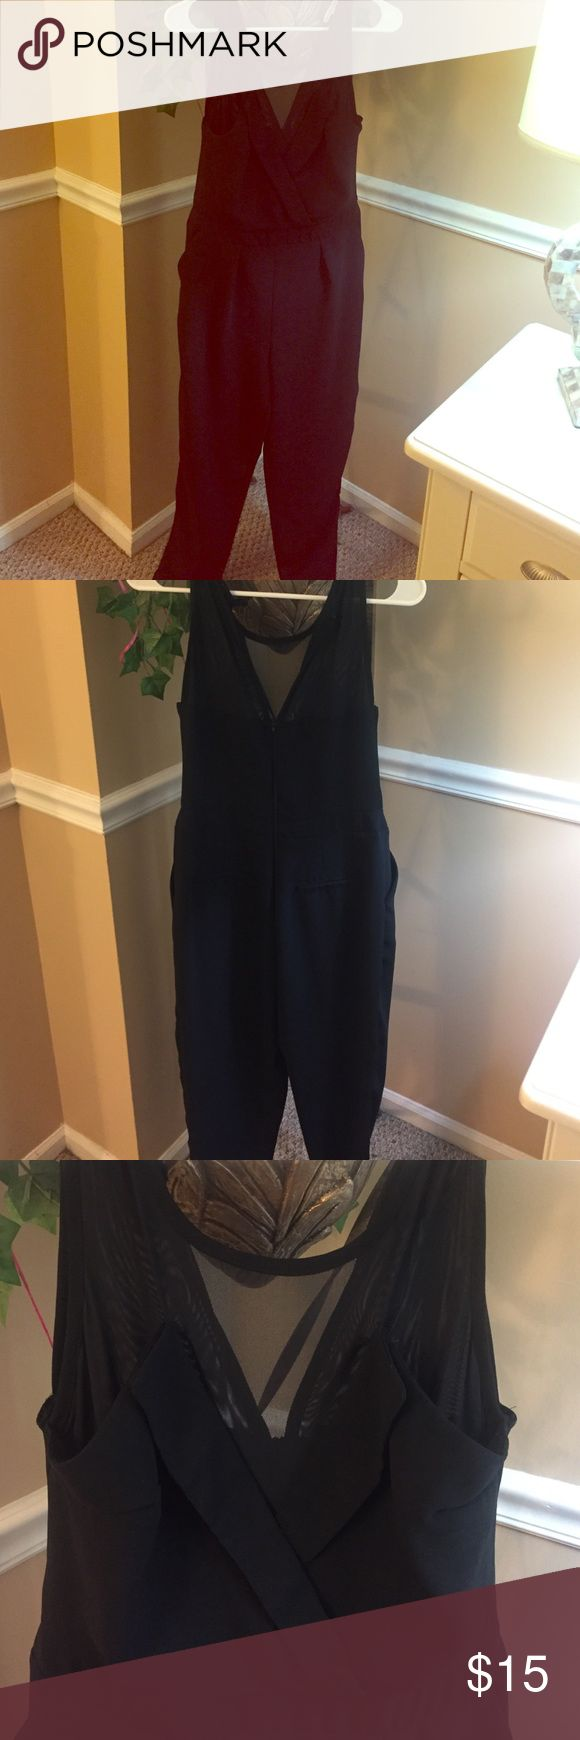 Beautiful black pant romper! Fairly new, beautiful black pant romper! I wore this romper once and loved it. Unfortunately it does not fit me anymore. It is very classy but also sexy at the same time, it has pockets, and looks great on. Perfect for holiday parties, etc! Charlotte Russe Other